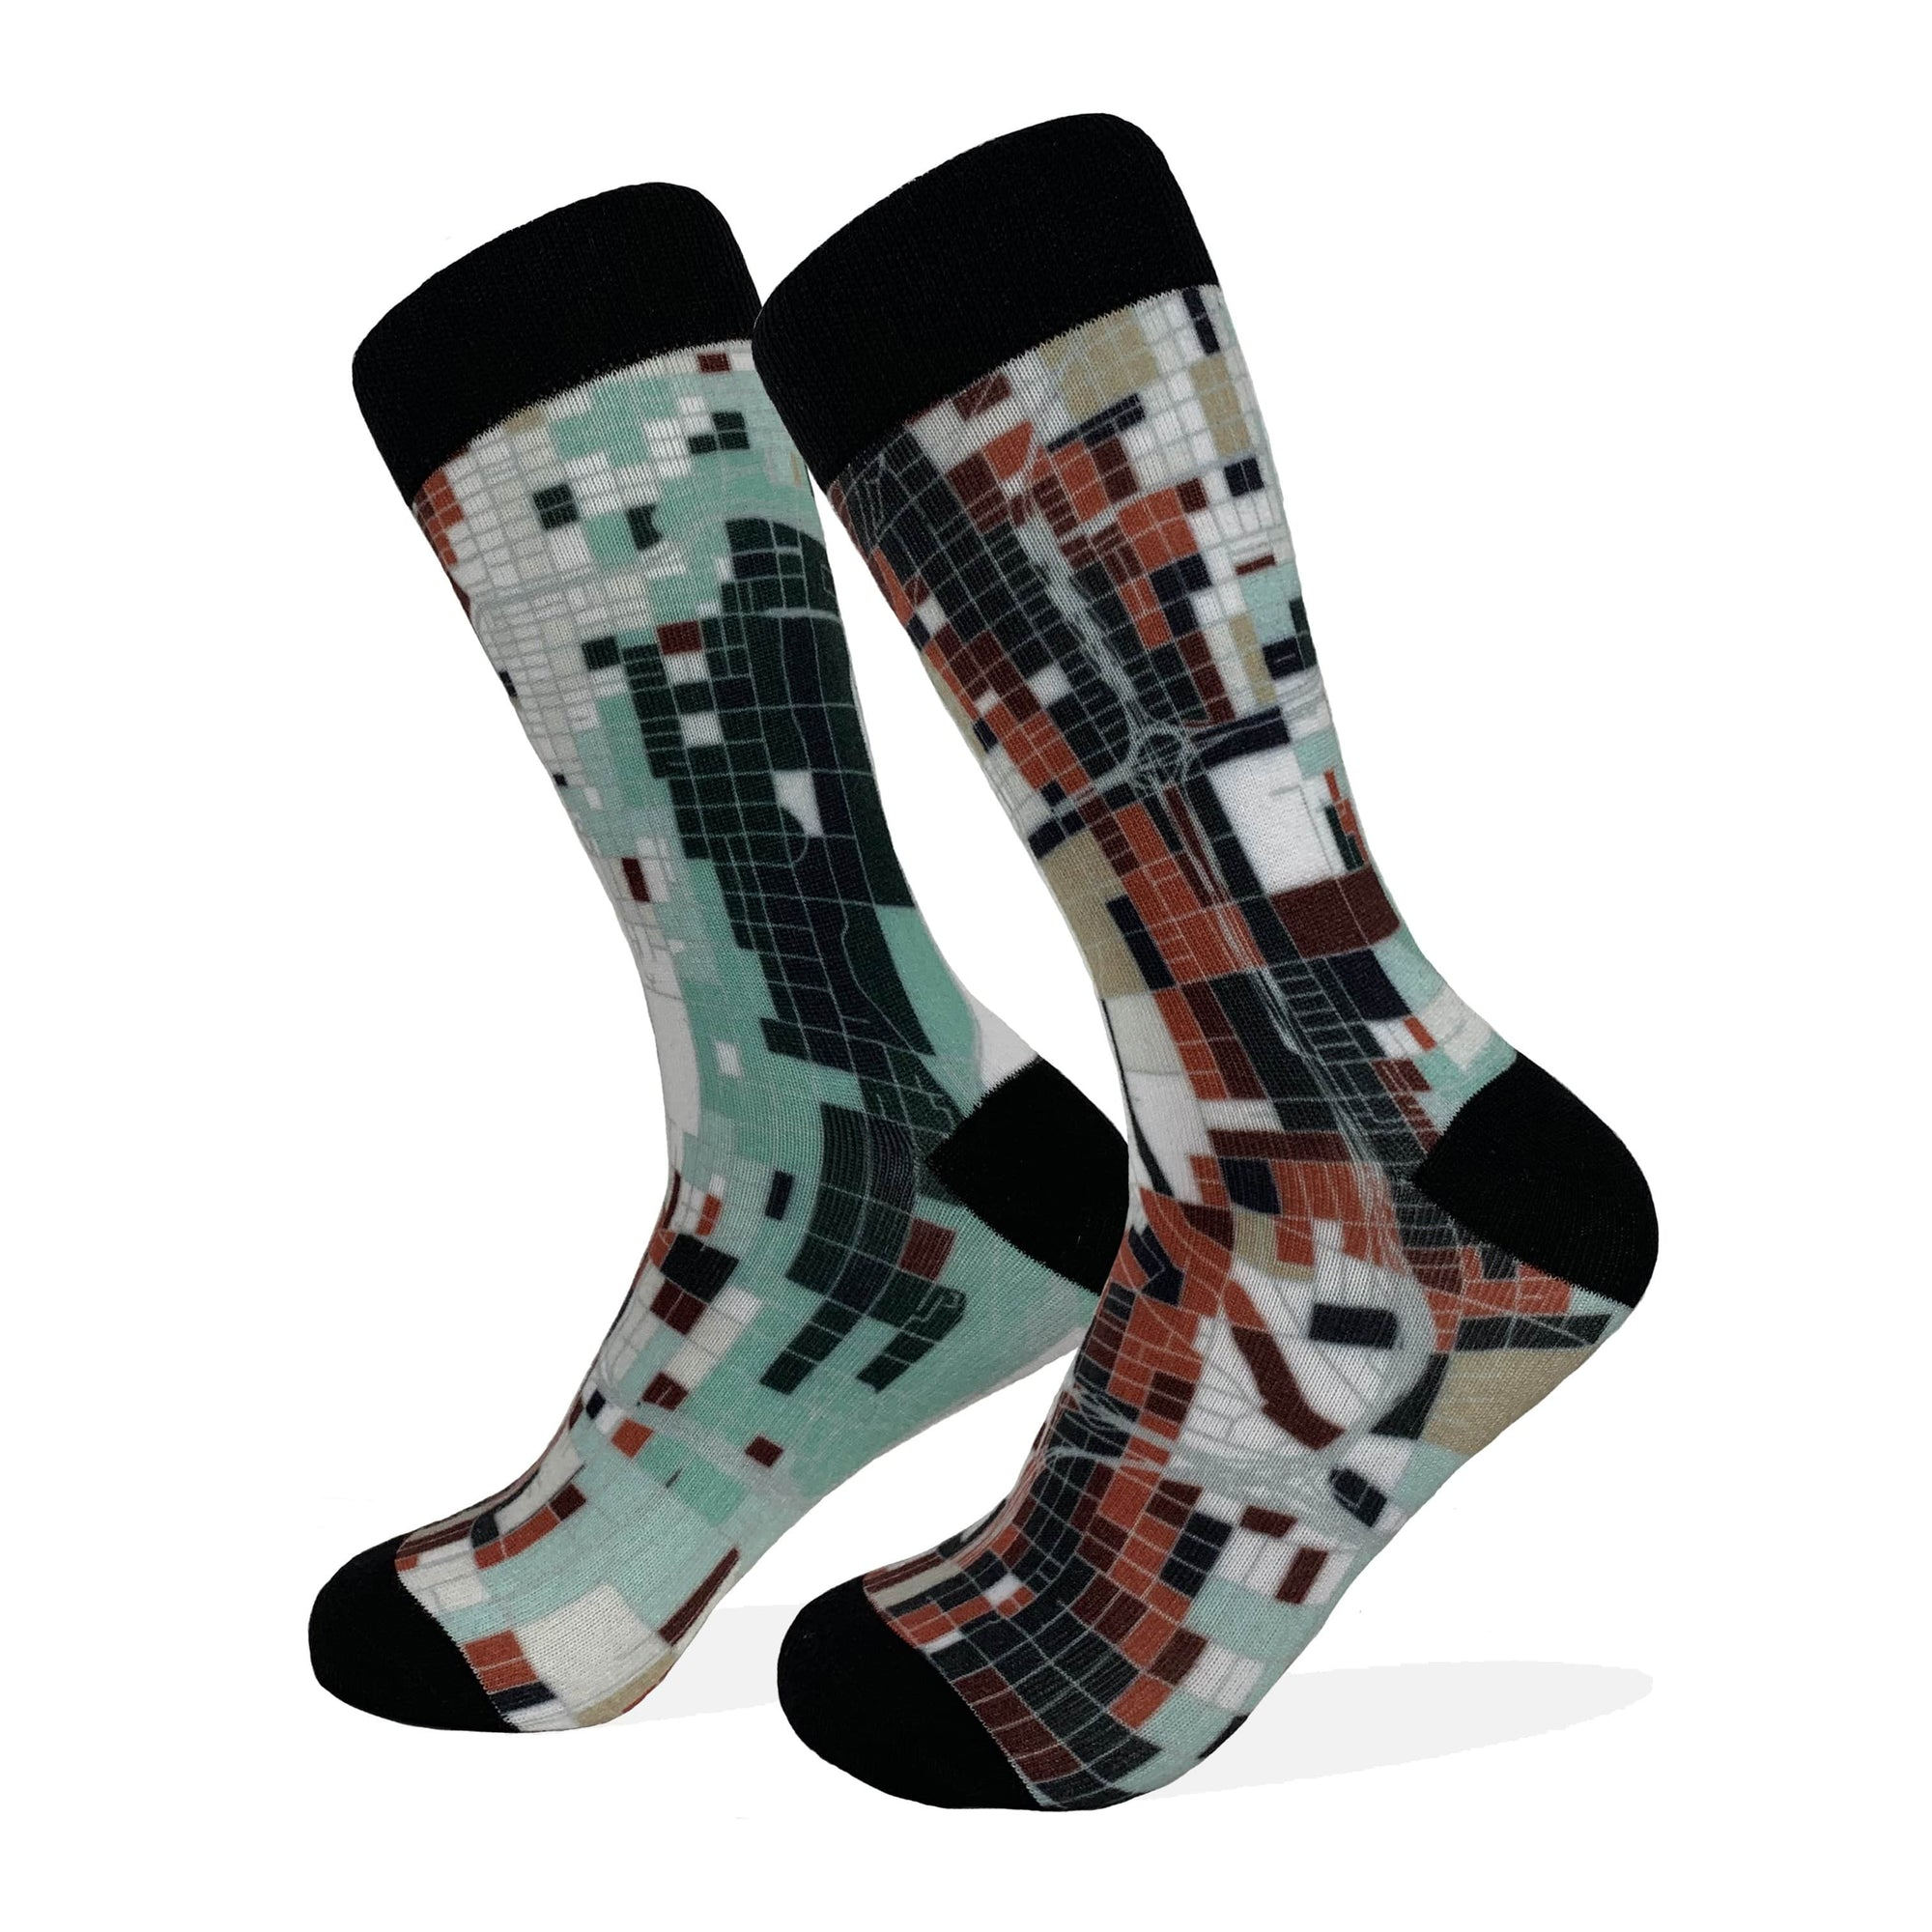 Chicago Map Socks | Colorful & Funky Socks | Mint & Brown